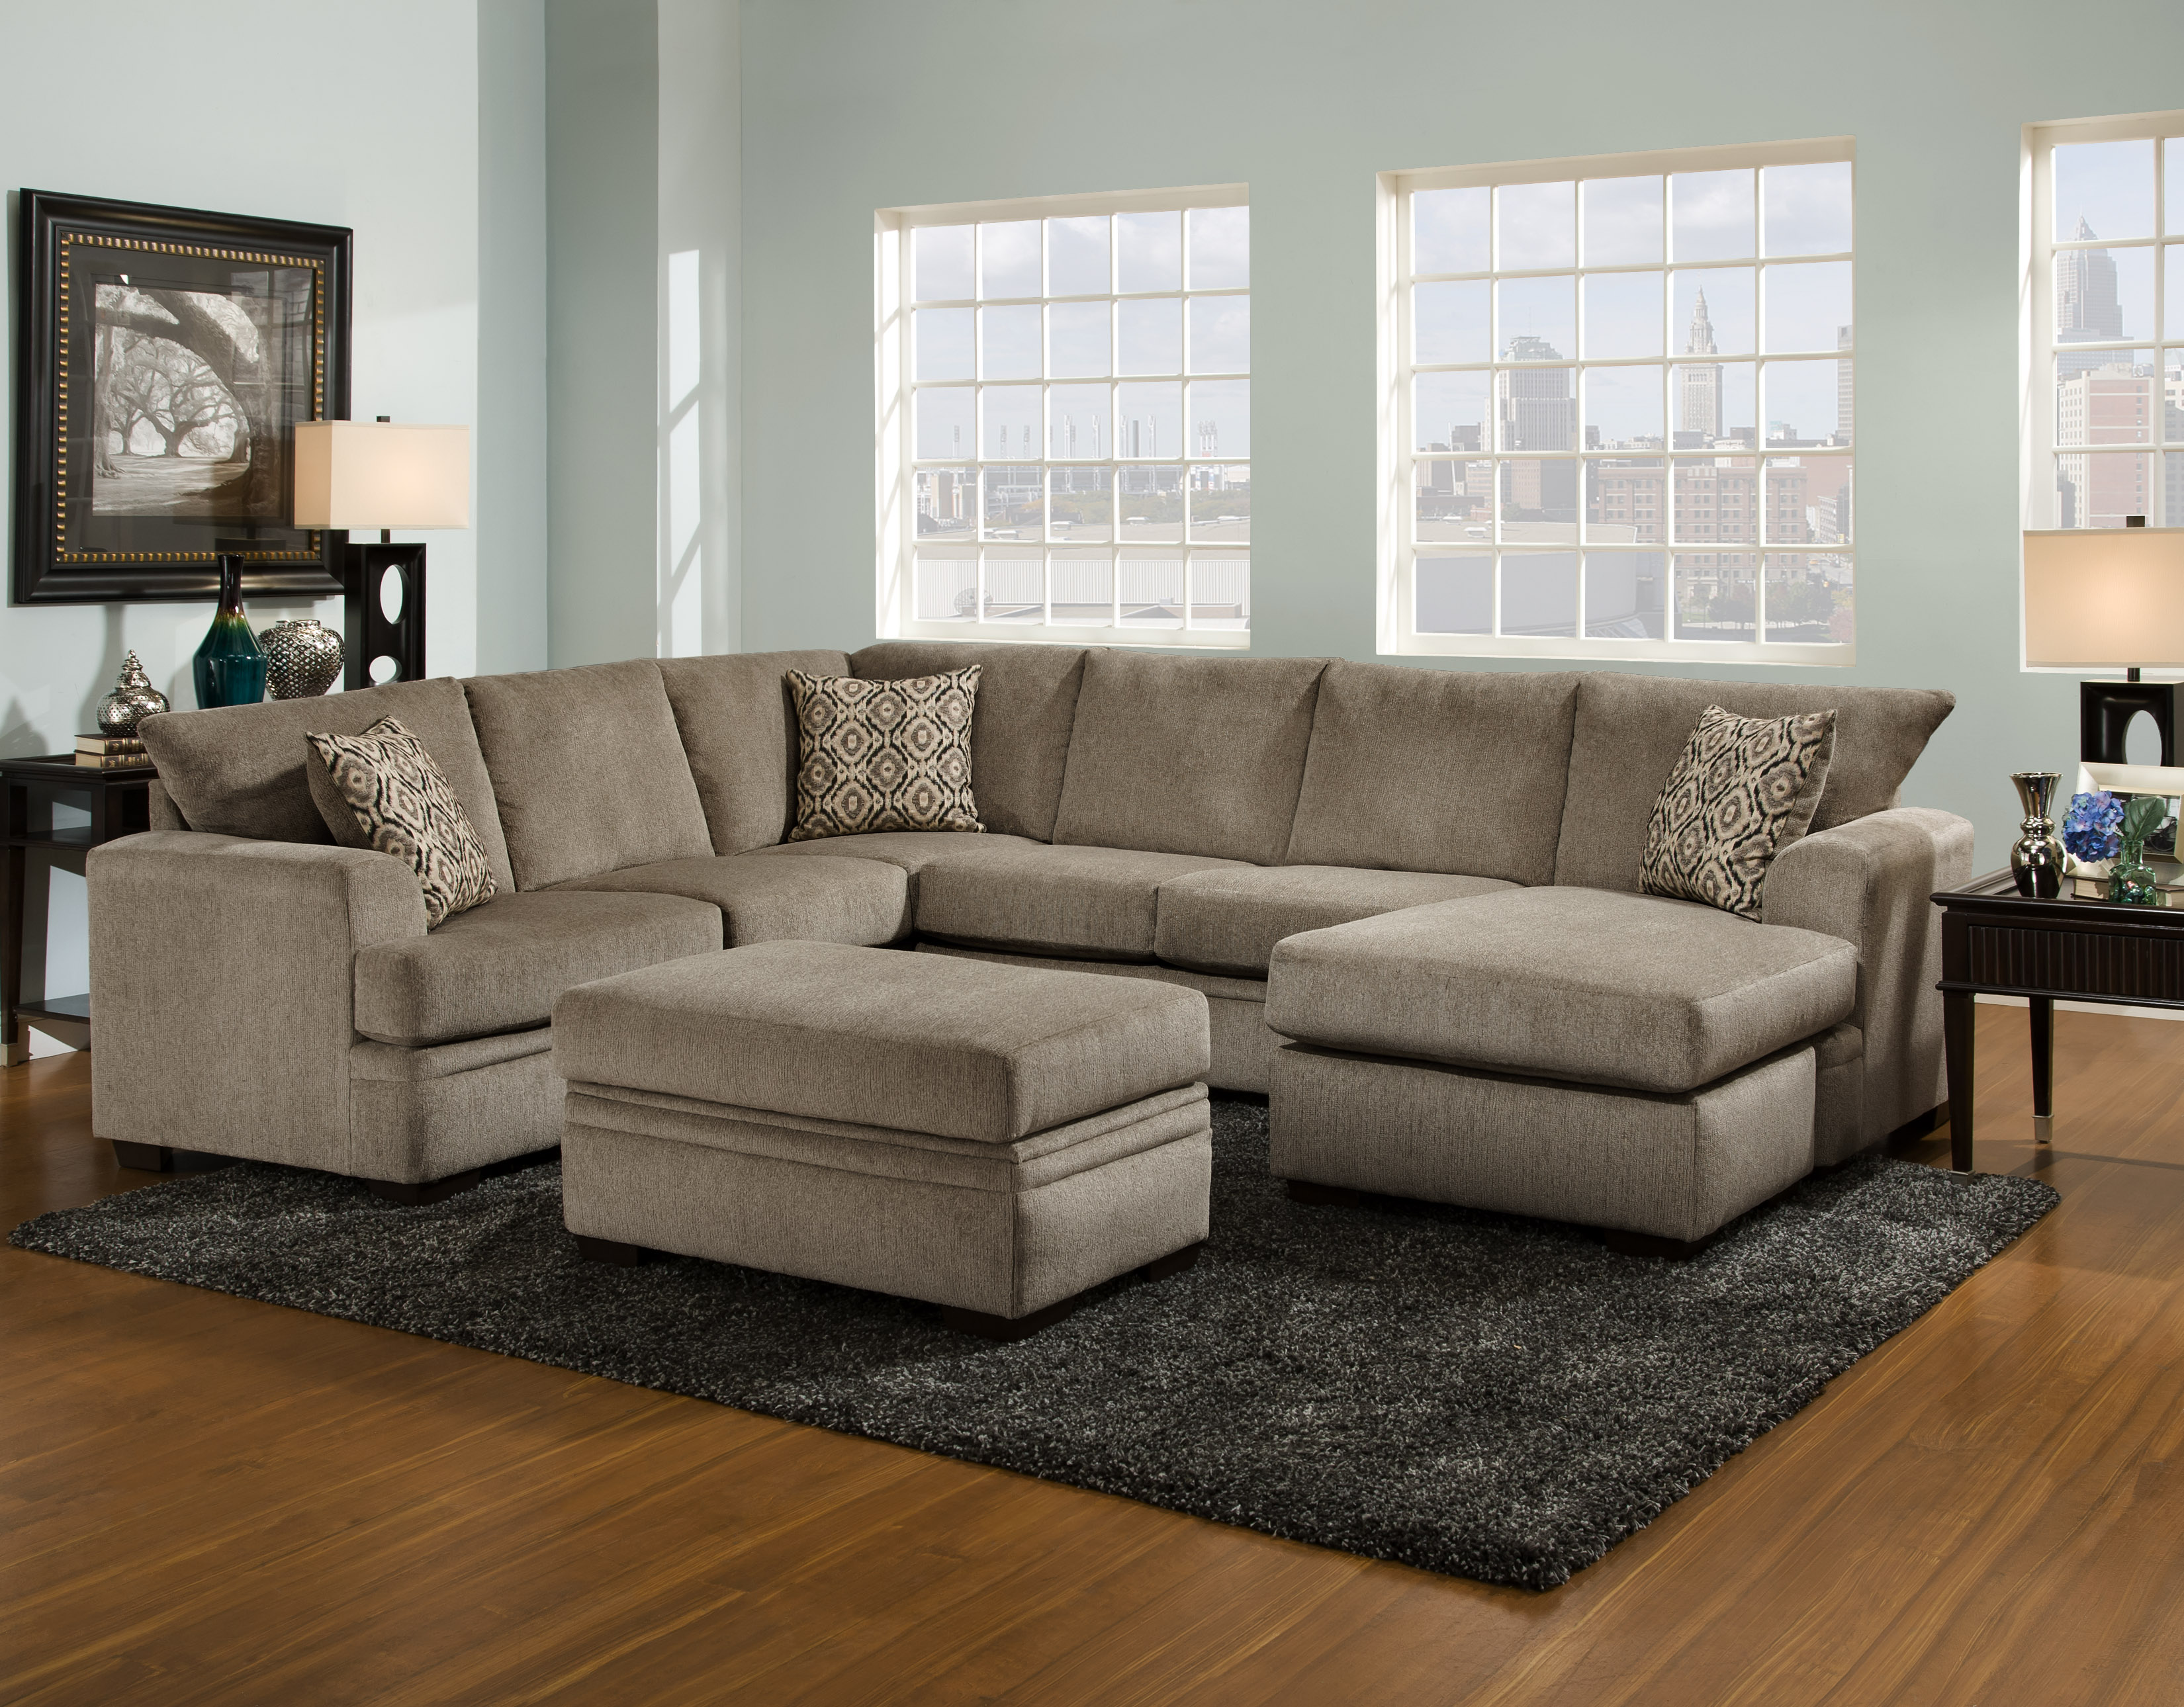 Beautiful american furniture afw lowest prices best for Americanhome com